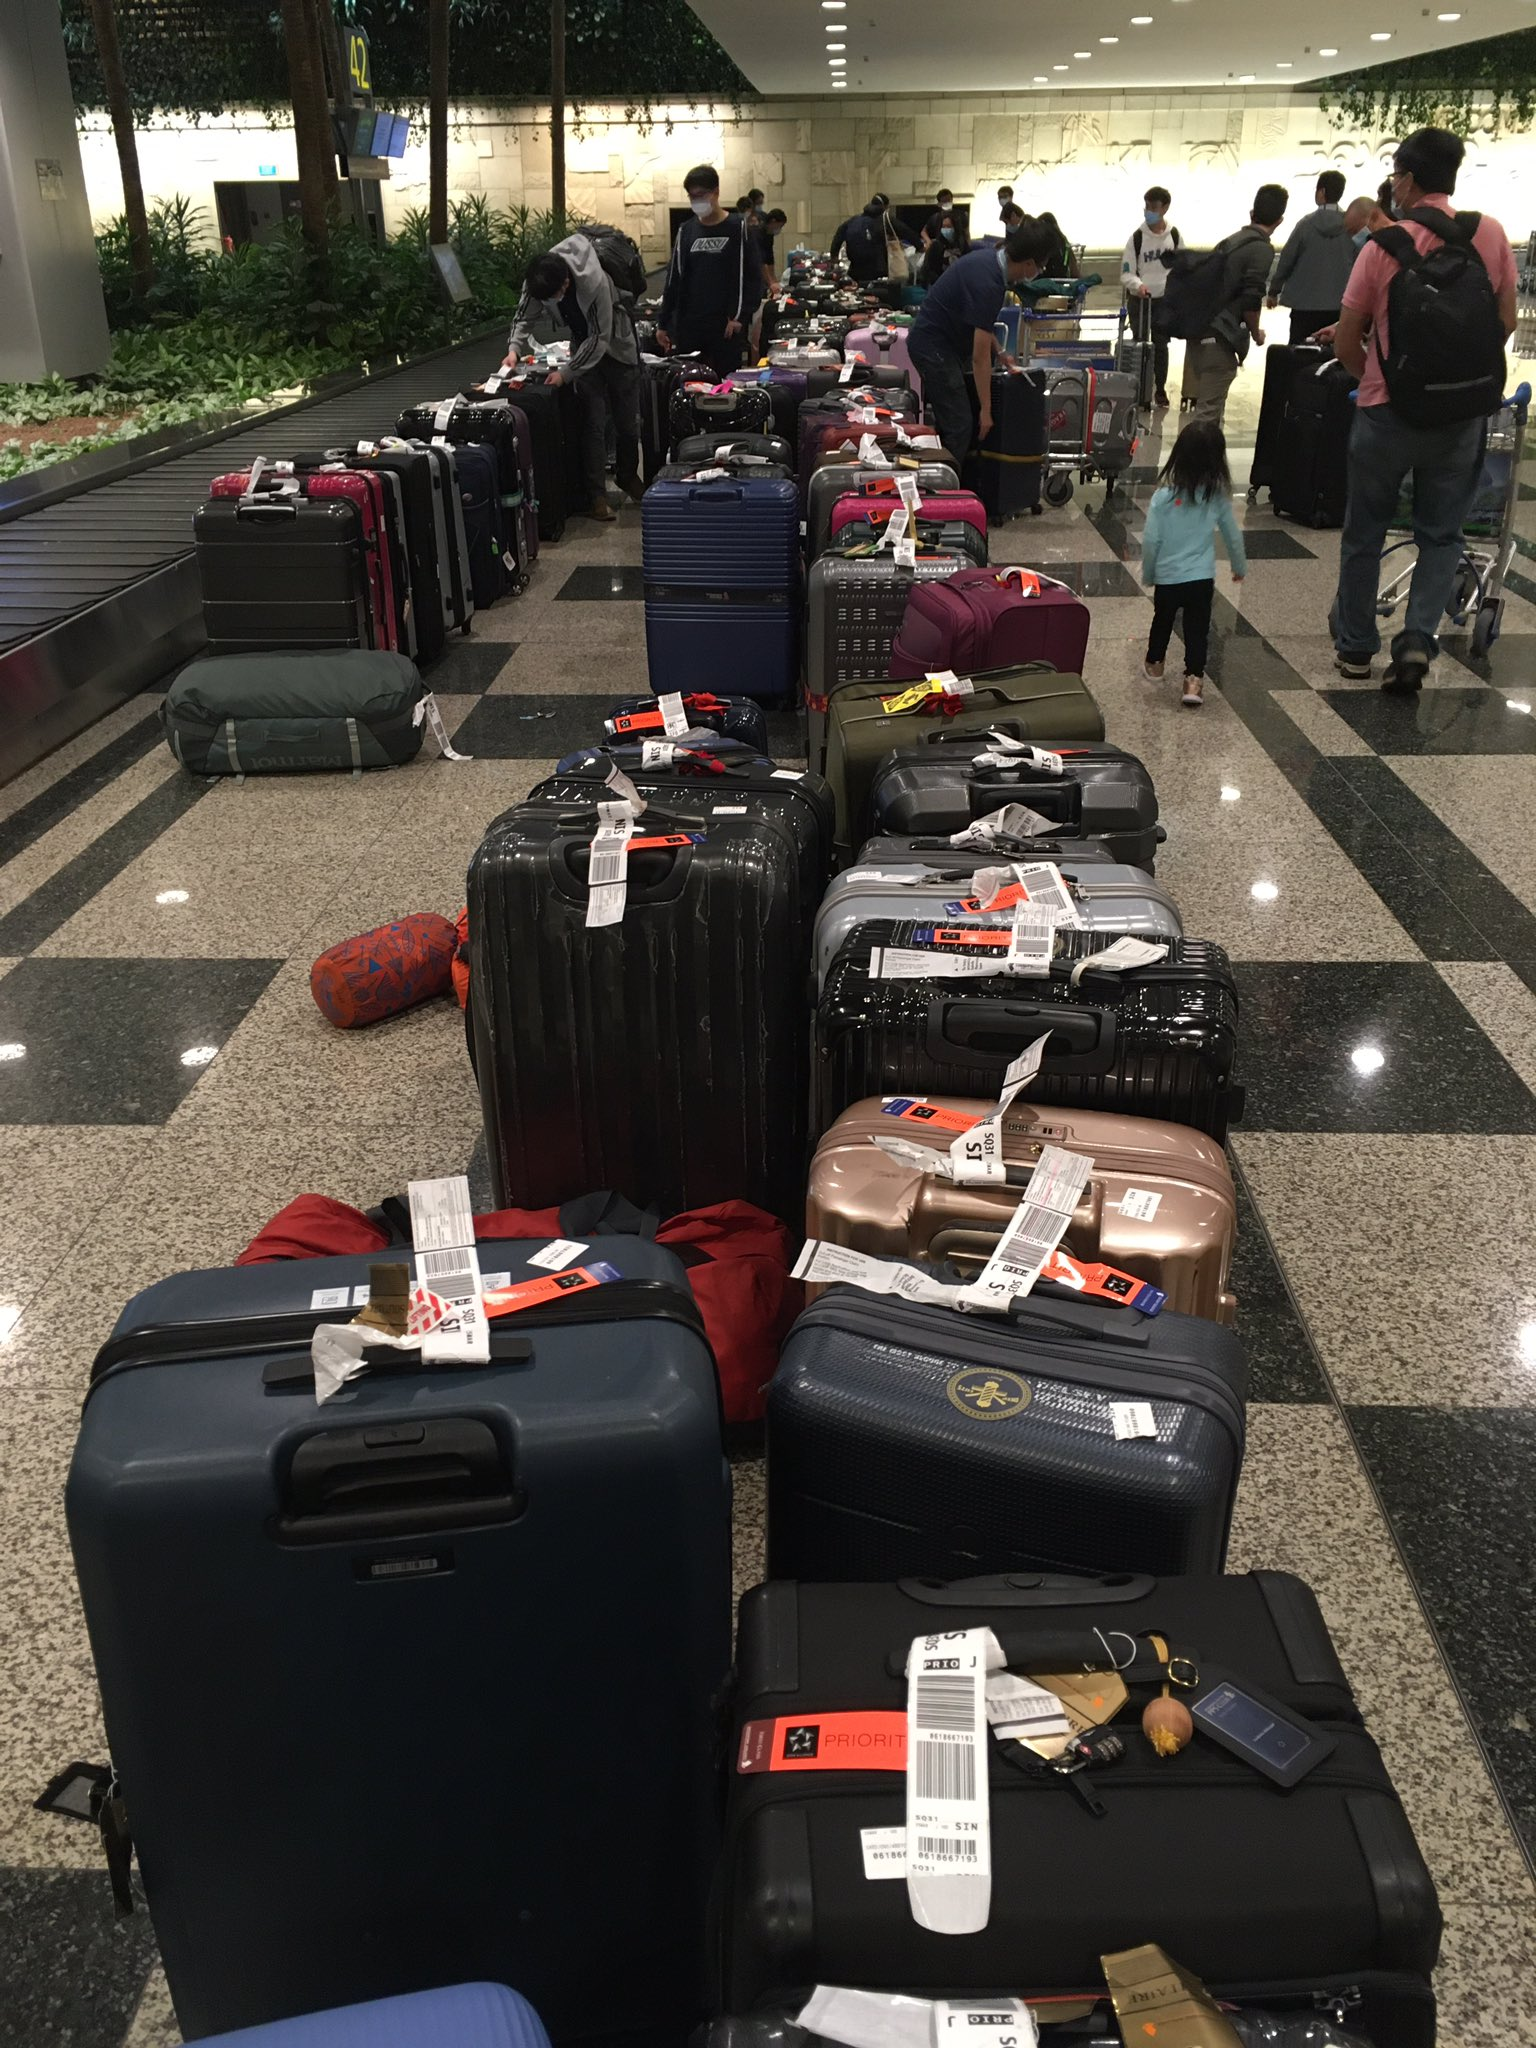 photo of neatly arranged luggage at Changi Airport before SHN